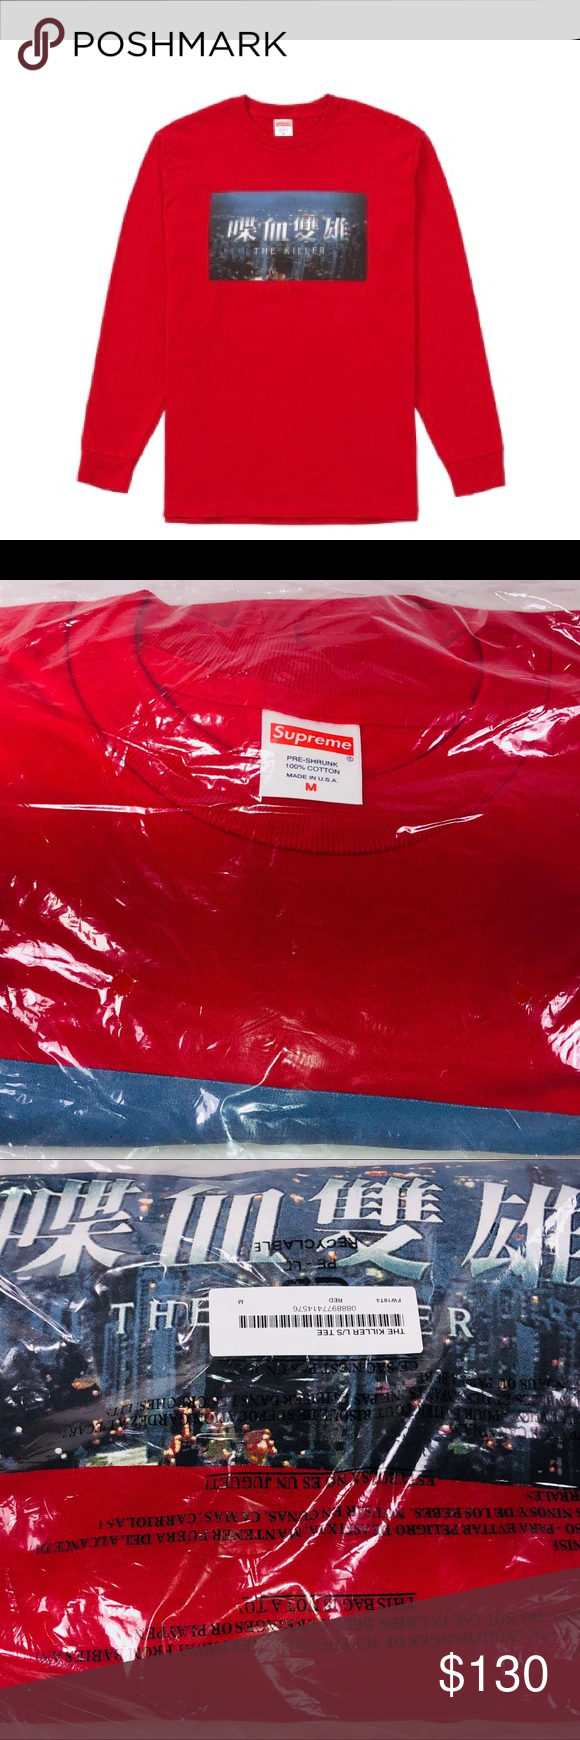 4a6f9ec7d960 Supreme The Killers Long Sleeve Tee Red FW18 New Deadstock In Plastic Bag  See Pictures For Details. Supreme The Killers L/S Long Sleeve Tee Red &  Multicolor ...